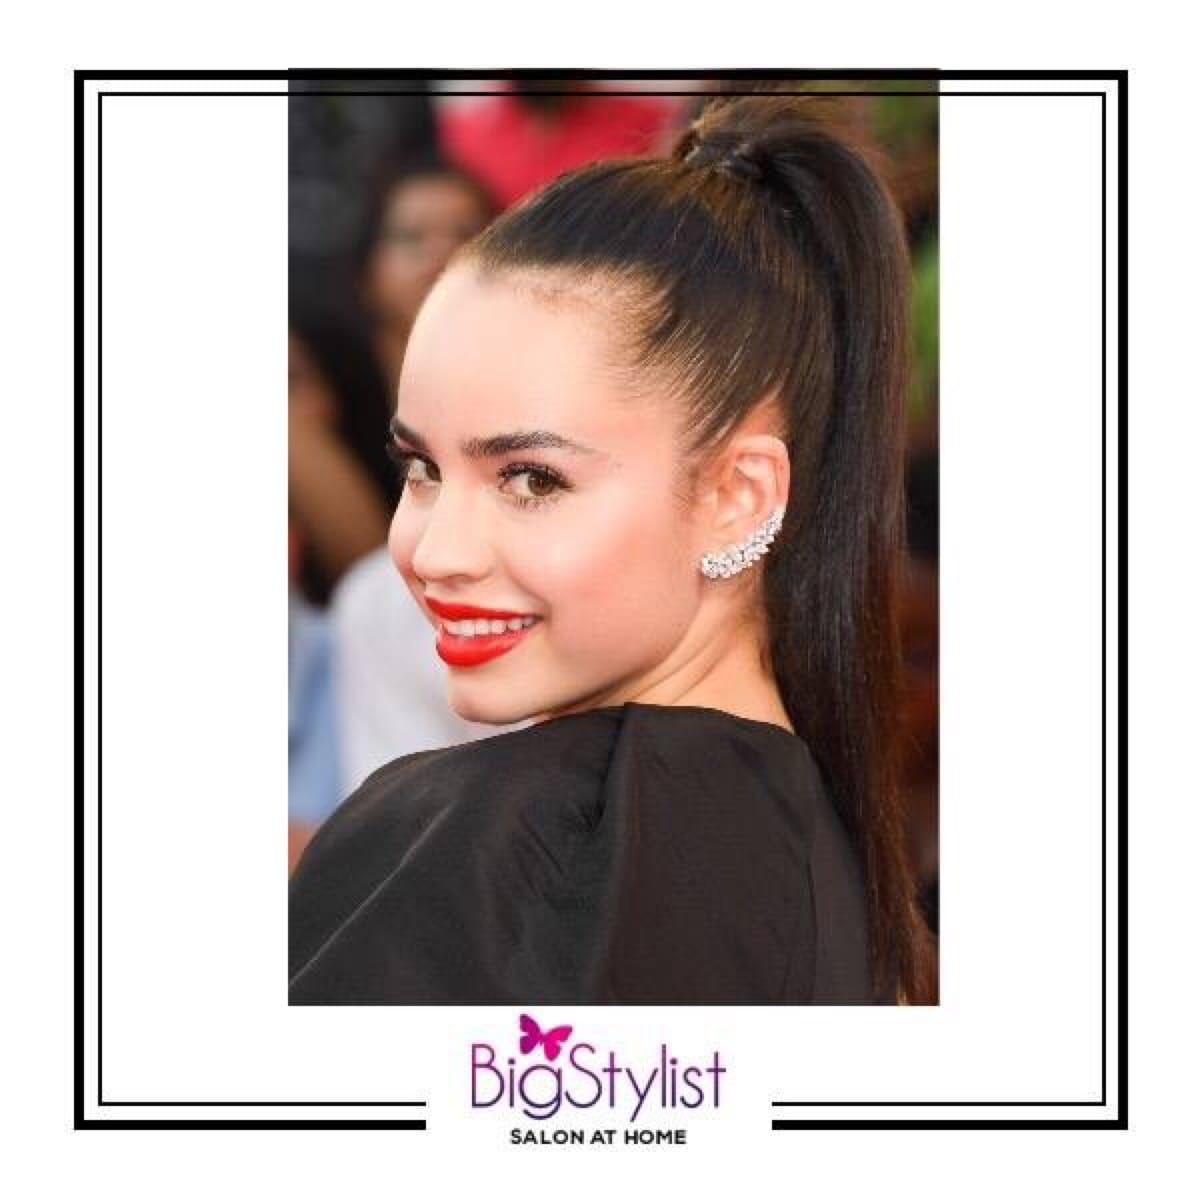 Take a cue from these celeb red carpet moments to upgrade your ponytail from gym rat to stunning style essential with the high pony trend! #highpony #trend #hairtrends #fashion #beauty #look #inspiration #celebritystyle #pretty #love #women #stayhomebeautiful #BigStylist